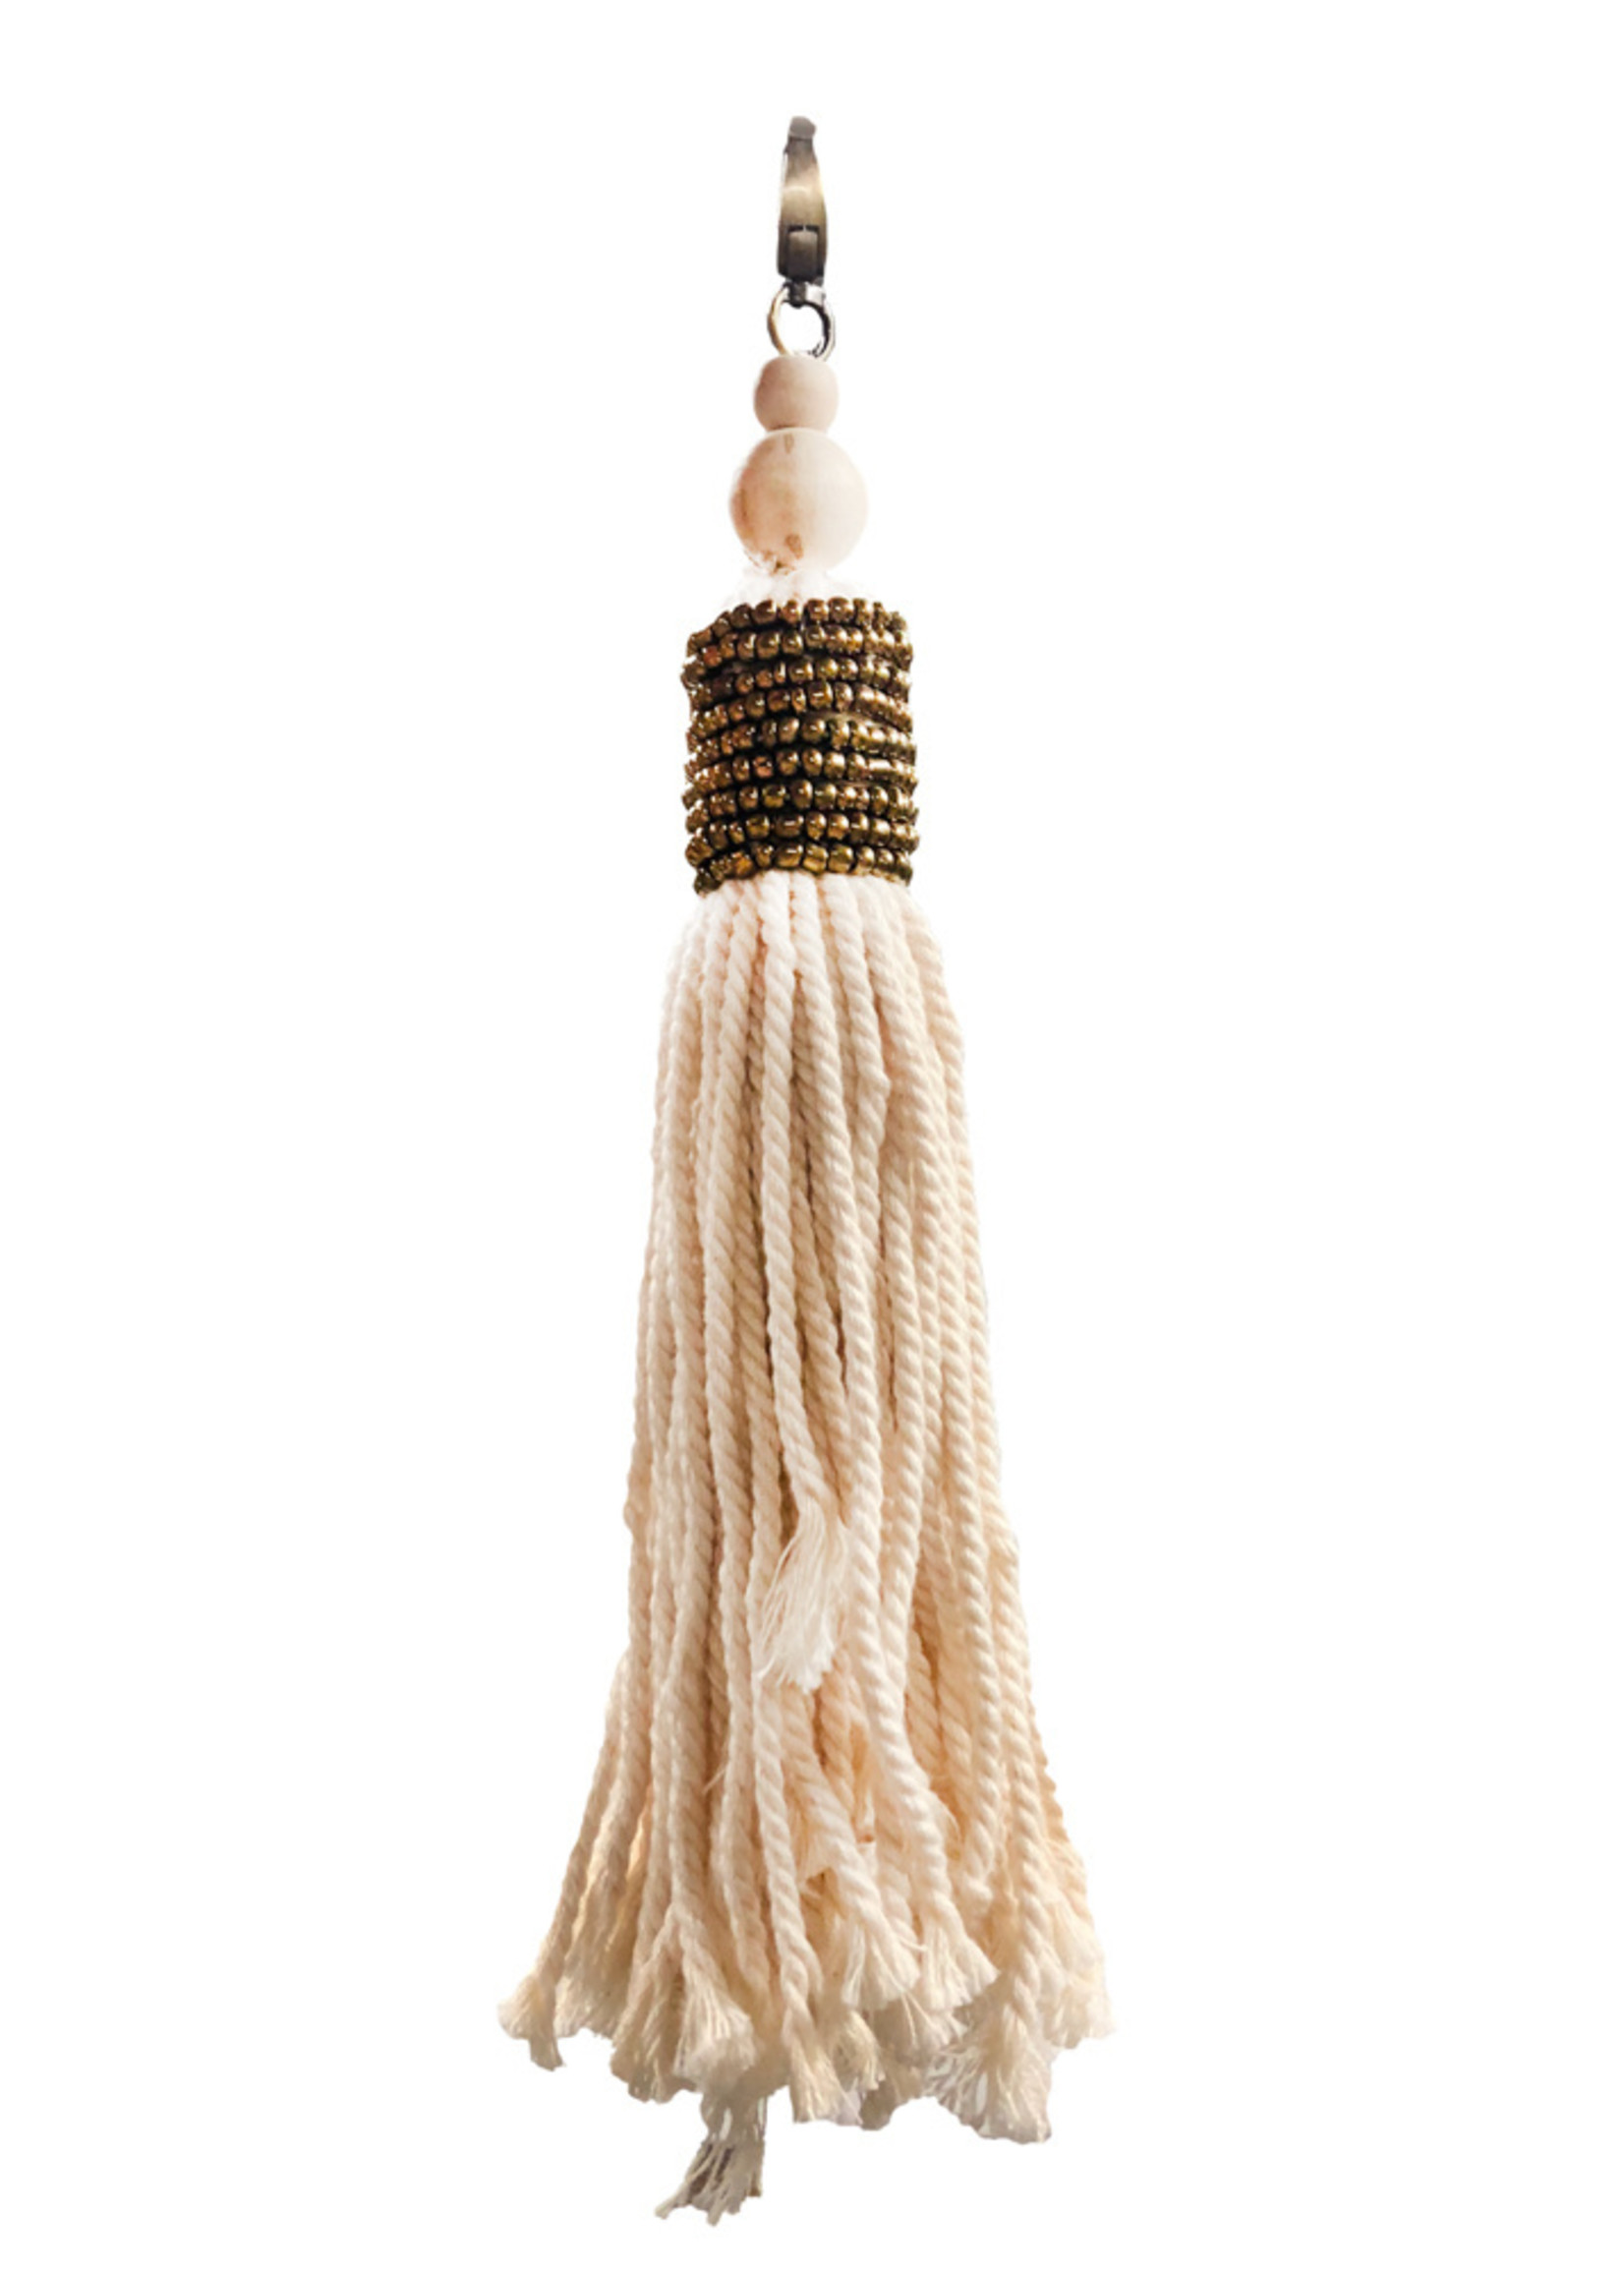 The Boho Chic Keychain - Natural